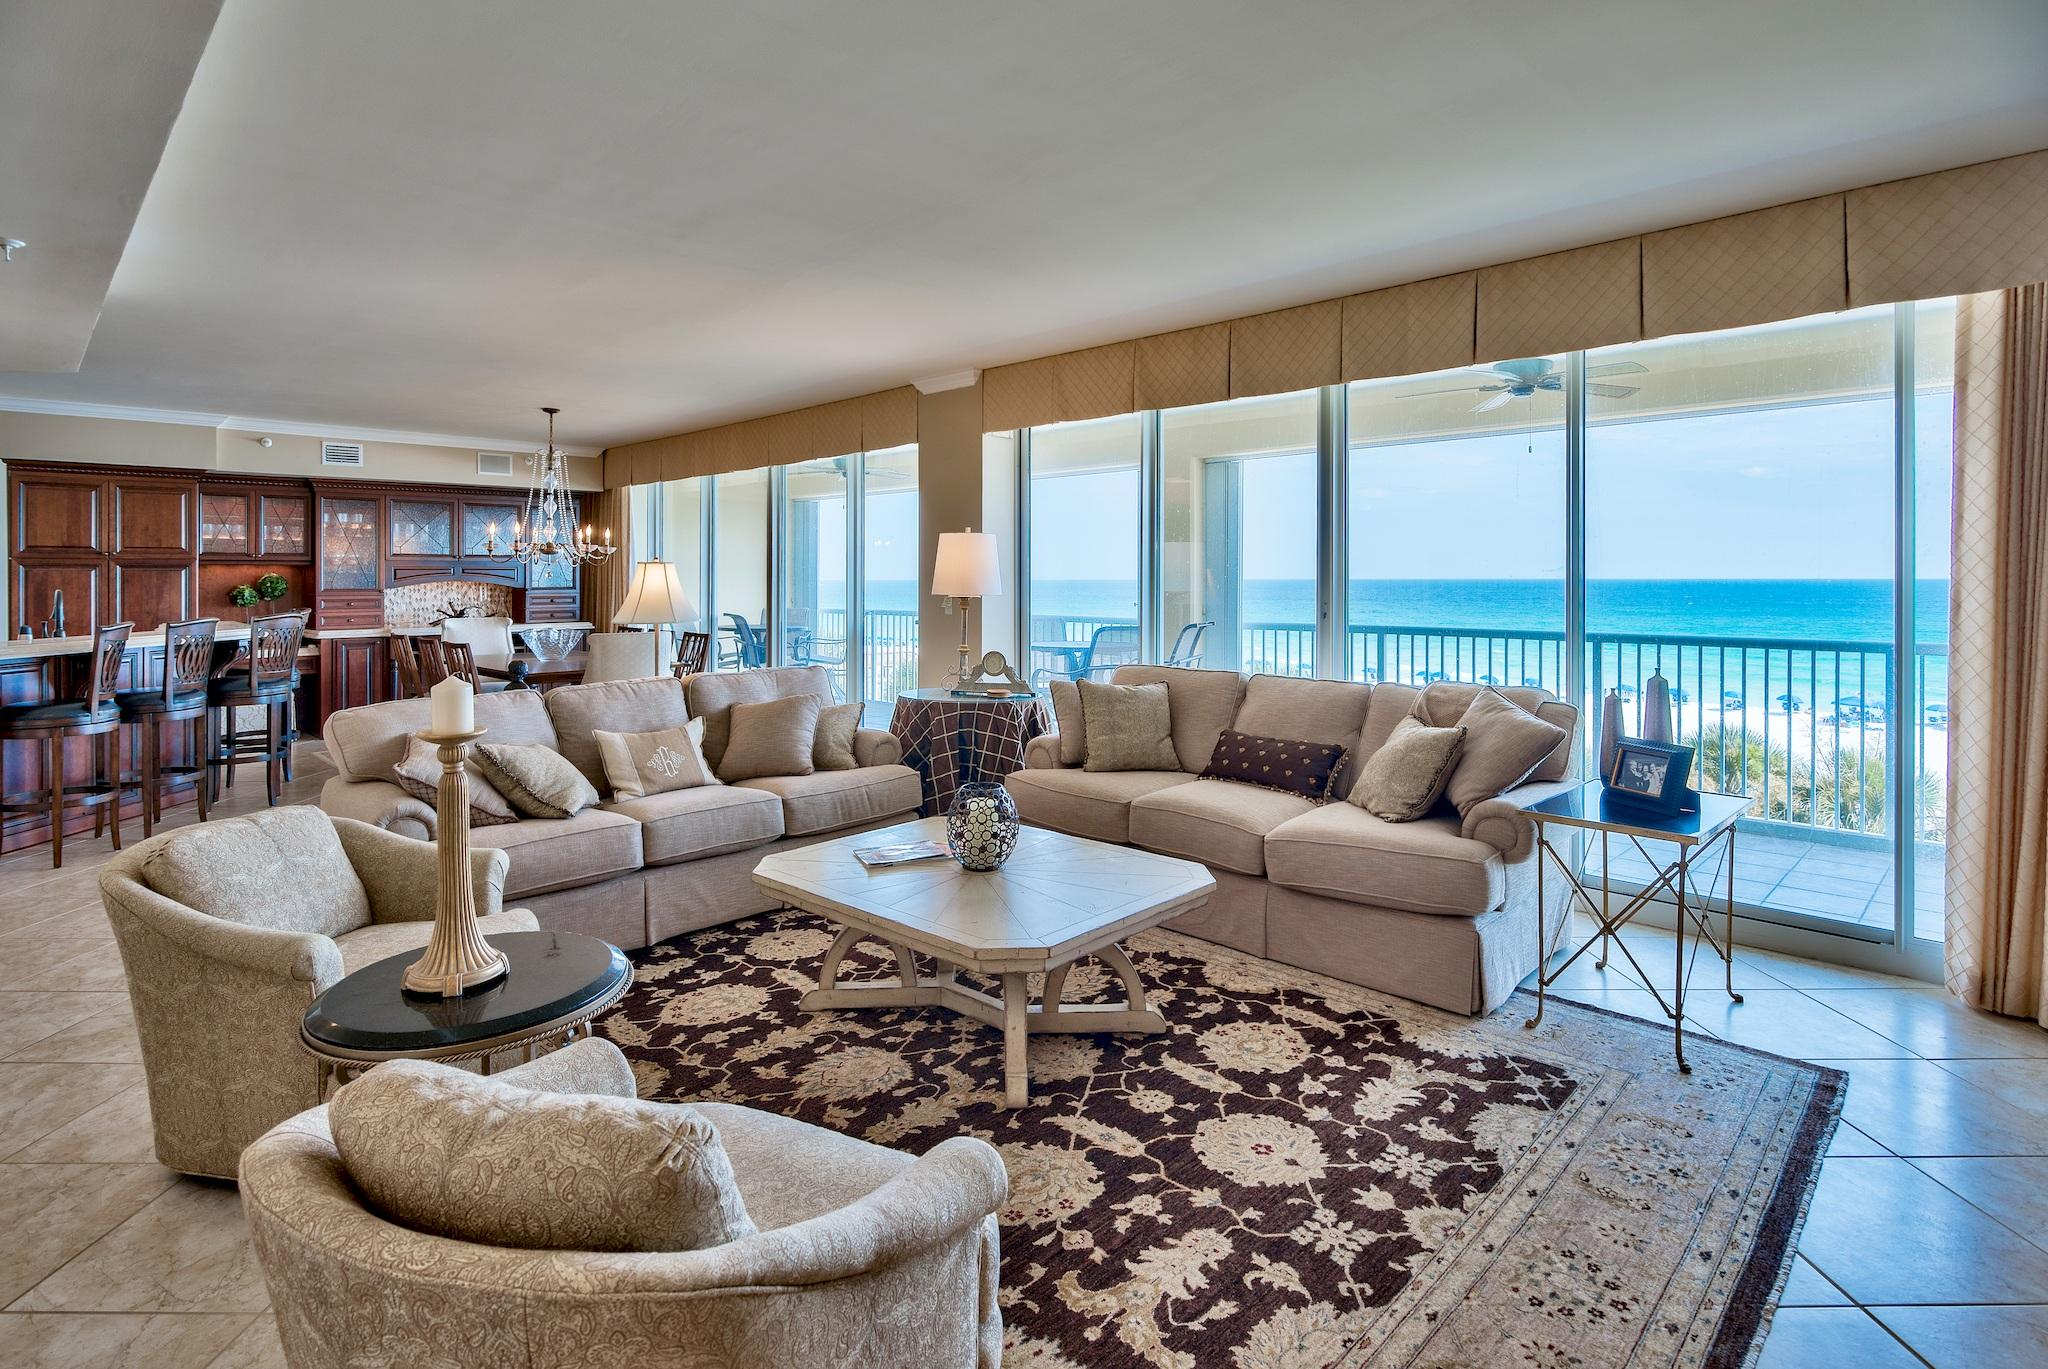 Phenomenal fully renovated custom unit at Oceania with a 60 foot wide balcony that looks right out onto the pristine beaches and emerald green waters of the Gulf of Mexico. This unit it just under 2,000 square feet and has floor to ceiling glass windows & doors that span across the entire front of the unit bringing the outside in. The views are truly breathtaking, not to mention the sophisticated and elegant interior. This unit has never been a rental unit and is impeccably maintained. Interior has been fully updated (~$260k) with beautiful custom wood cabinets, marble countertops, new kitchen appliances, updated fixtures, sinks/tubs, lighting & flooring. All bedrooms offer en-suite bathrooms and are generous in size. The unit is being sold fully furnished & decorated and is sure impress! The floor plan is incredible with an open living & dining area capturing beautiful views of the Gulf, crown molding and raised ceilings. There are remote controlled blinds along with plantation shutters in some of the bedrooms. Porcelain floors extend throughout the main living & dining areas and master bedroom - great for beach living! The guest bedrooms has new upscale carpet. The kitchen has also been fully renovated and is exquisite. The rich hardwood cabinets have a delicate trim and set the tone for the kitchen. The custom cabinets and glass extend to the wet bar area along with stunning marble countertops and a beautiful tiled backsplash. There is a formal dining area with Gulf views and a breakfast bar for more casual dining. The dining and living area opens up to the massive 60 foot balcony, which is the perfect place to unwind, enjoy the sunset or entertain.   The master suite is on the west wing of the unit and is a great sized room with a seating area, direct balcony access, walk-in closet and impressive en-suite master bathroom. The bathroom has marble countertops, double vanity, custom cabinets, Jacuzzi tub and separate walk-in shower. A wall was opened up to create a larger shower area. There are two guest bedrooms, each with en-suite bathrooms, a laundry area and plenty of storage. There is a storage unit right outside the unit and a larger one on the 3rd floor off the elevator. You don't have to bring in your sandy beach gear into the condo. There is also an assigned parking space for the unit, which is a nice convenience.   Oceania is located right on the beach on legendary Holiday Isle in the heart of Destin. The community is gated and features a gulf side pool and exercise room. The lobby & poolside owner's lounge was recently renovated for a contemporary look. Relax in the sand, at the pool, or enjoy the stunning views from your balcony. Located on Holilday Ilse in the heart of Destin, you are just minutes from all the dining, shopping and entertainment you could ask for in your new beachfront retreat.